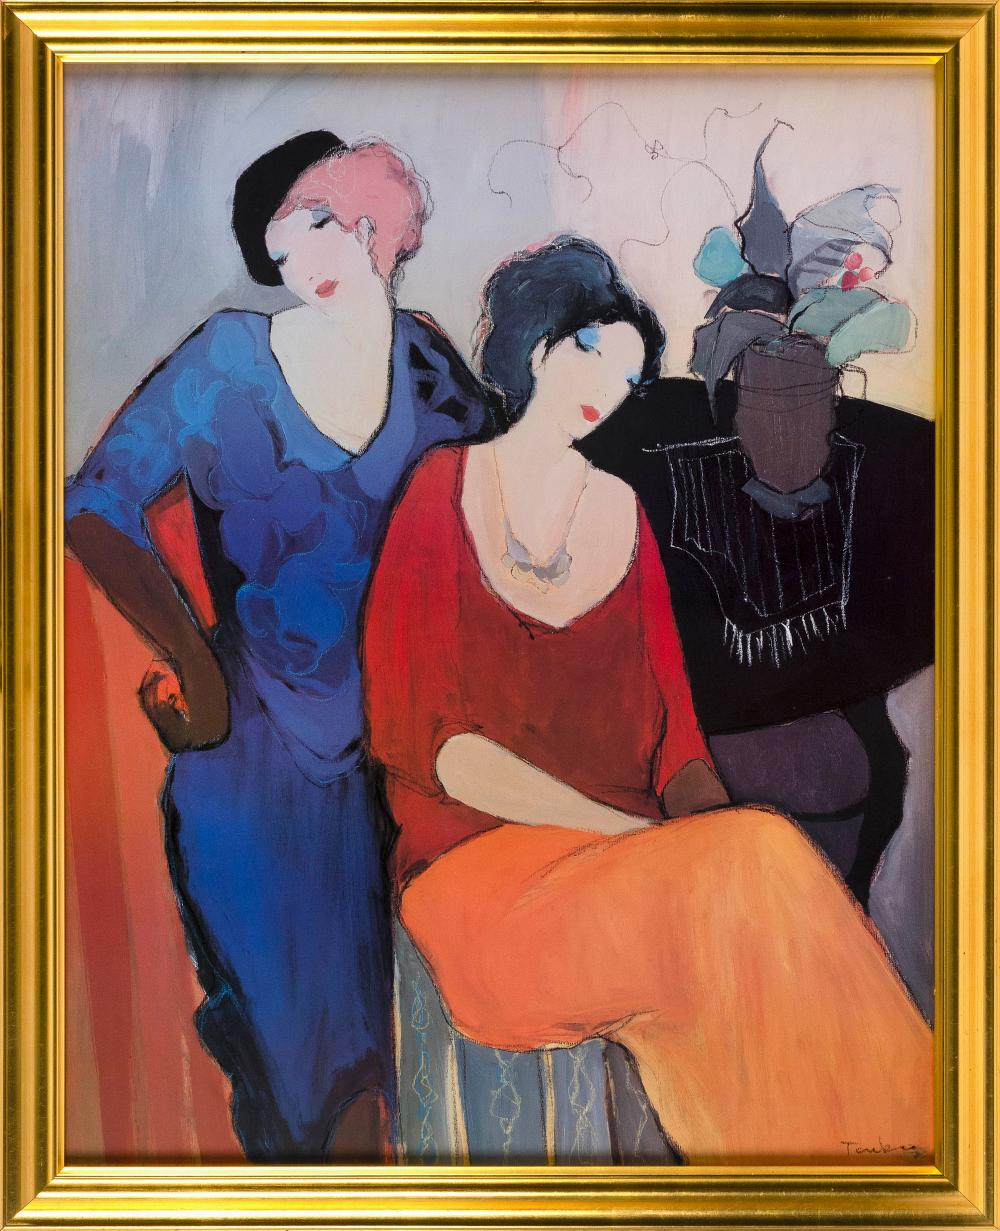 """ITZCHAK ISAAC TARKAY, Serbia/Israel, 1935-2012, Two figures in an interior., Lithograph on paper, 29.5"""" x 23.5"""". Framed 34"""" x 27""""."""